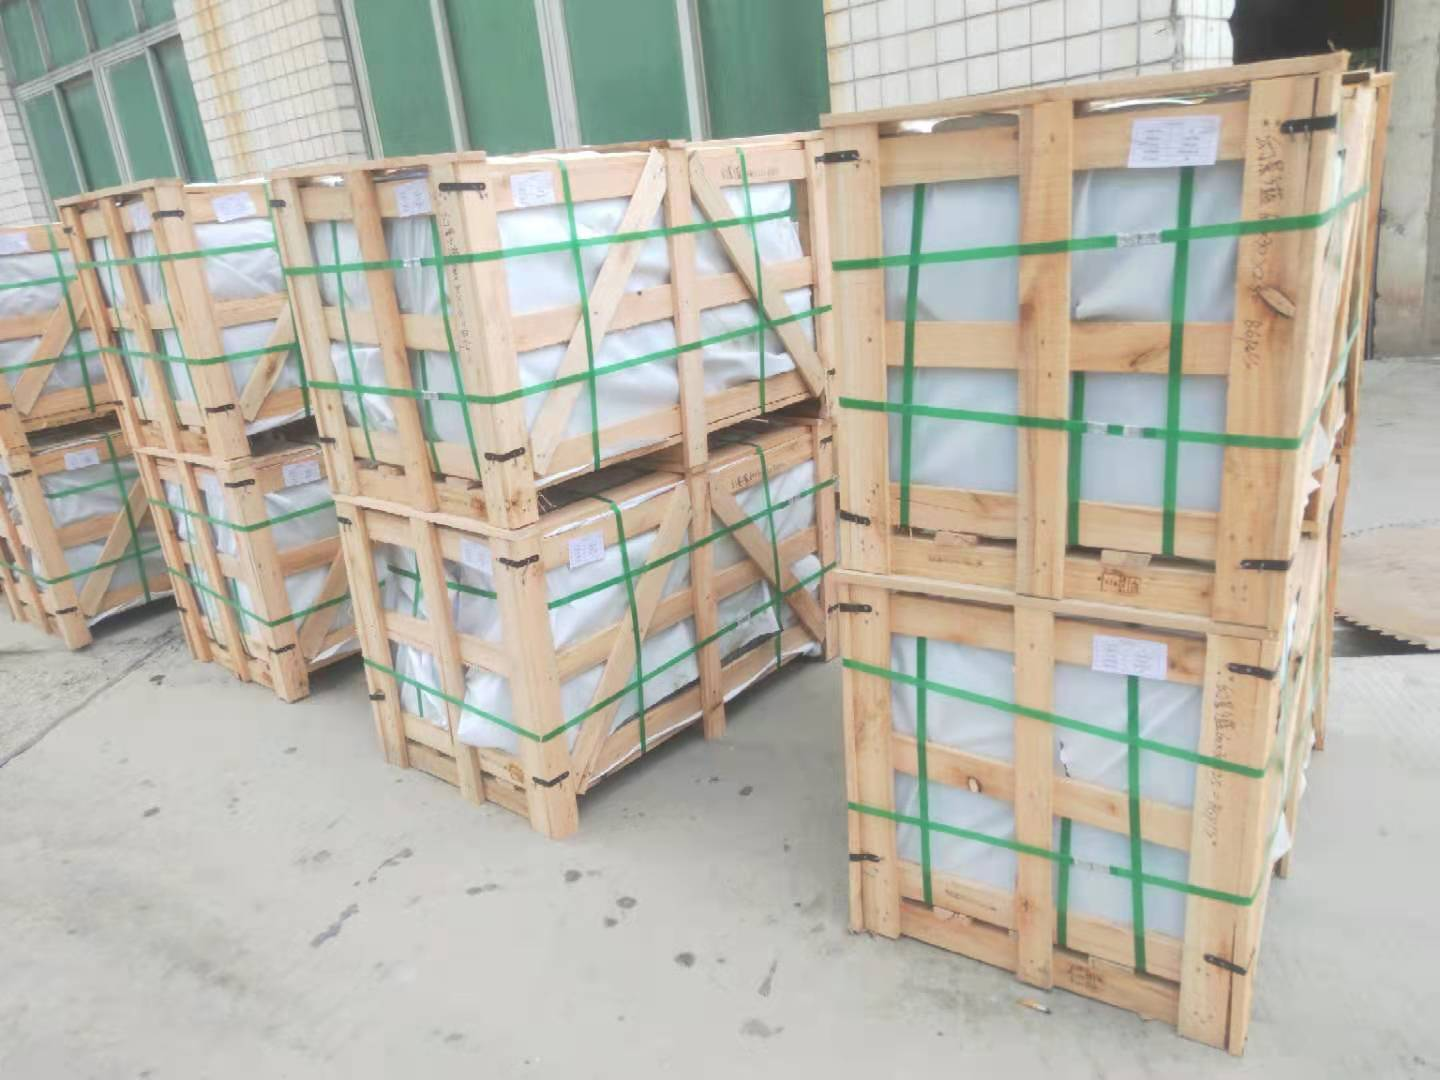 Polished Volga Blue tiles. 9 containers. Shipped. фото 61764c1471451